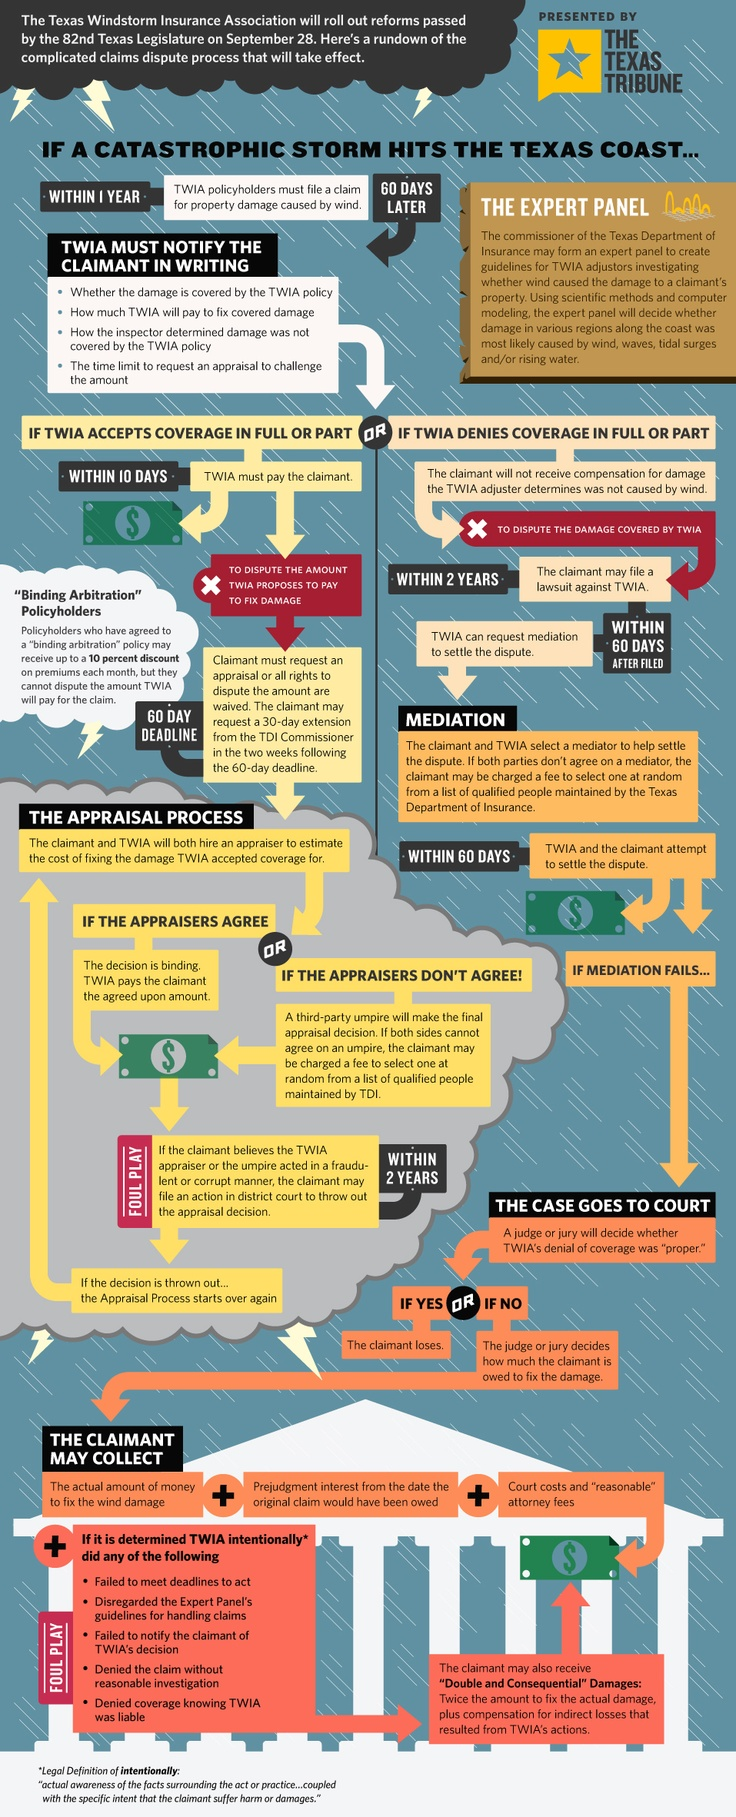 11 best insurance twia texas windstorm images on pinterest a flow chart to visualize the new and complicated process policyholders with the texas windstorm insurance association will undergo to claim c 1betcityfo Choice Image